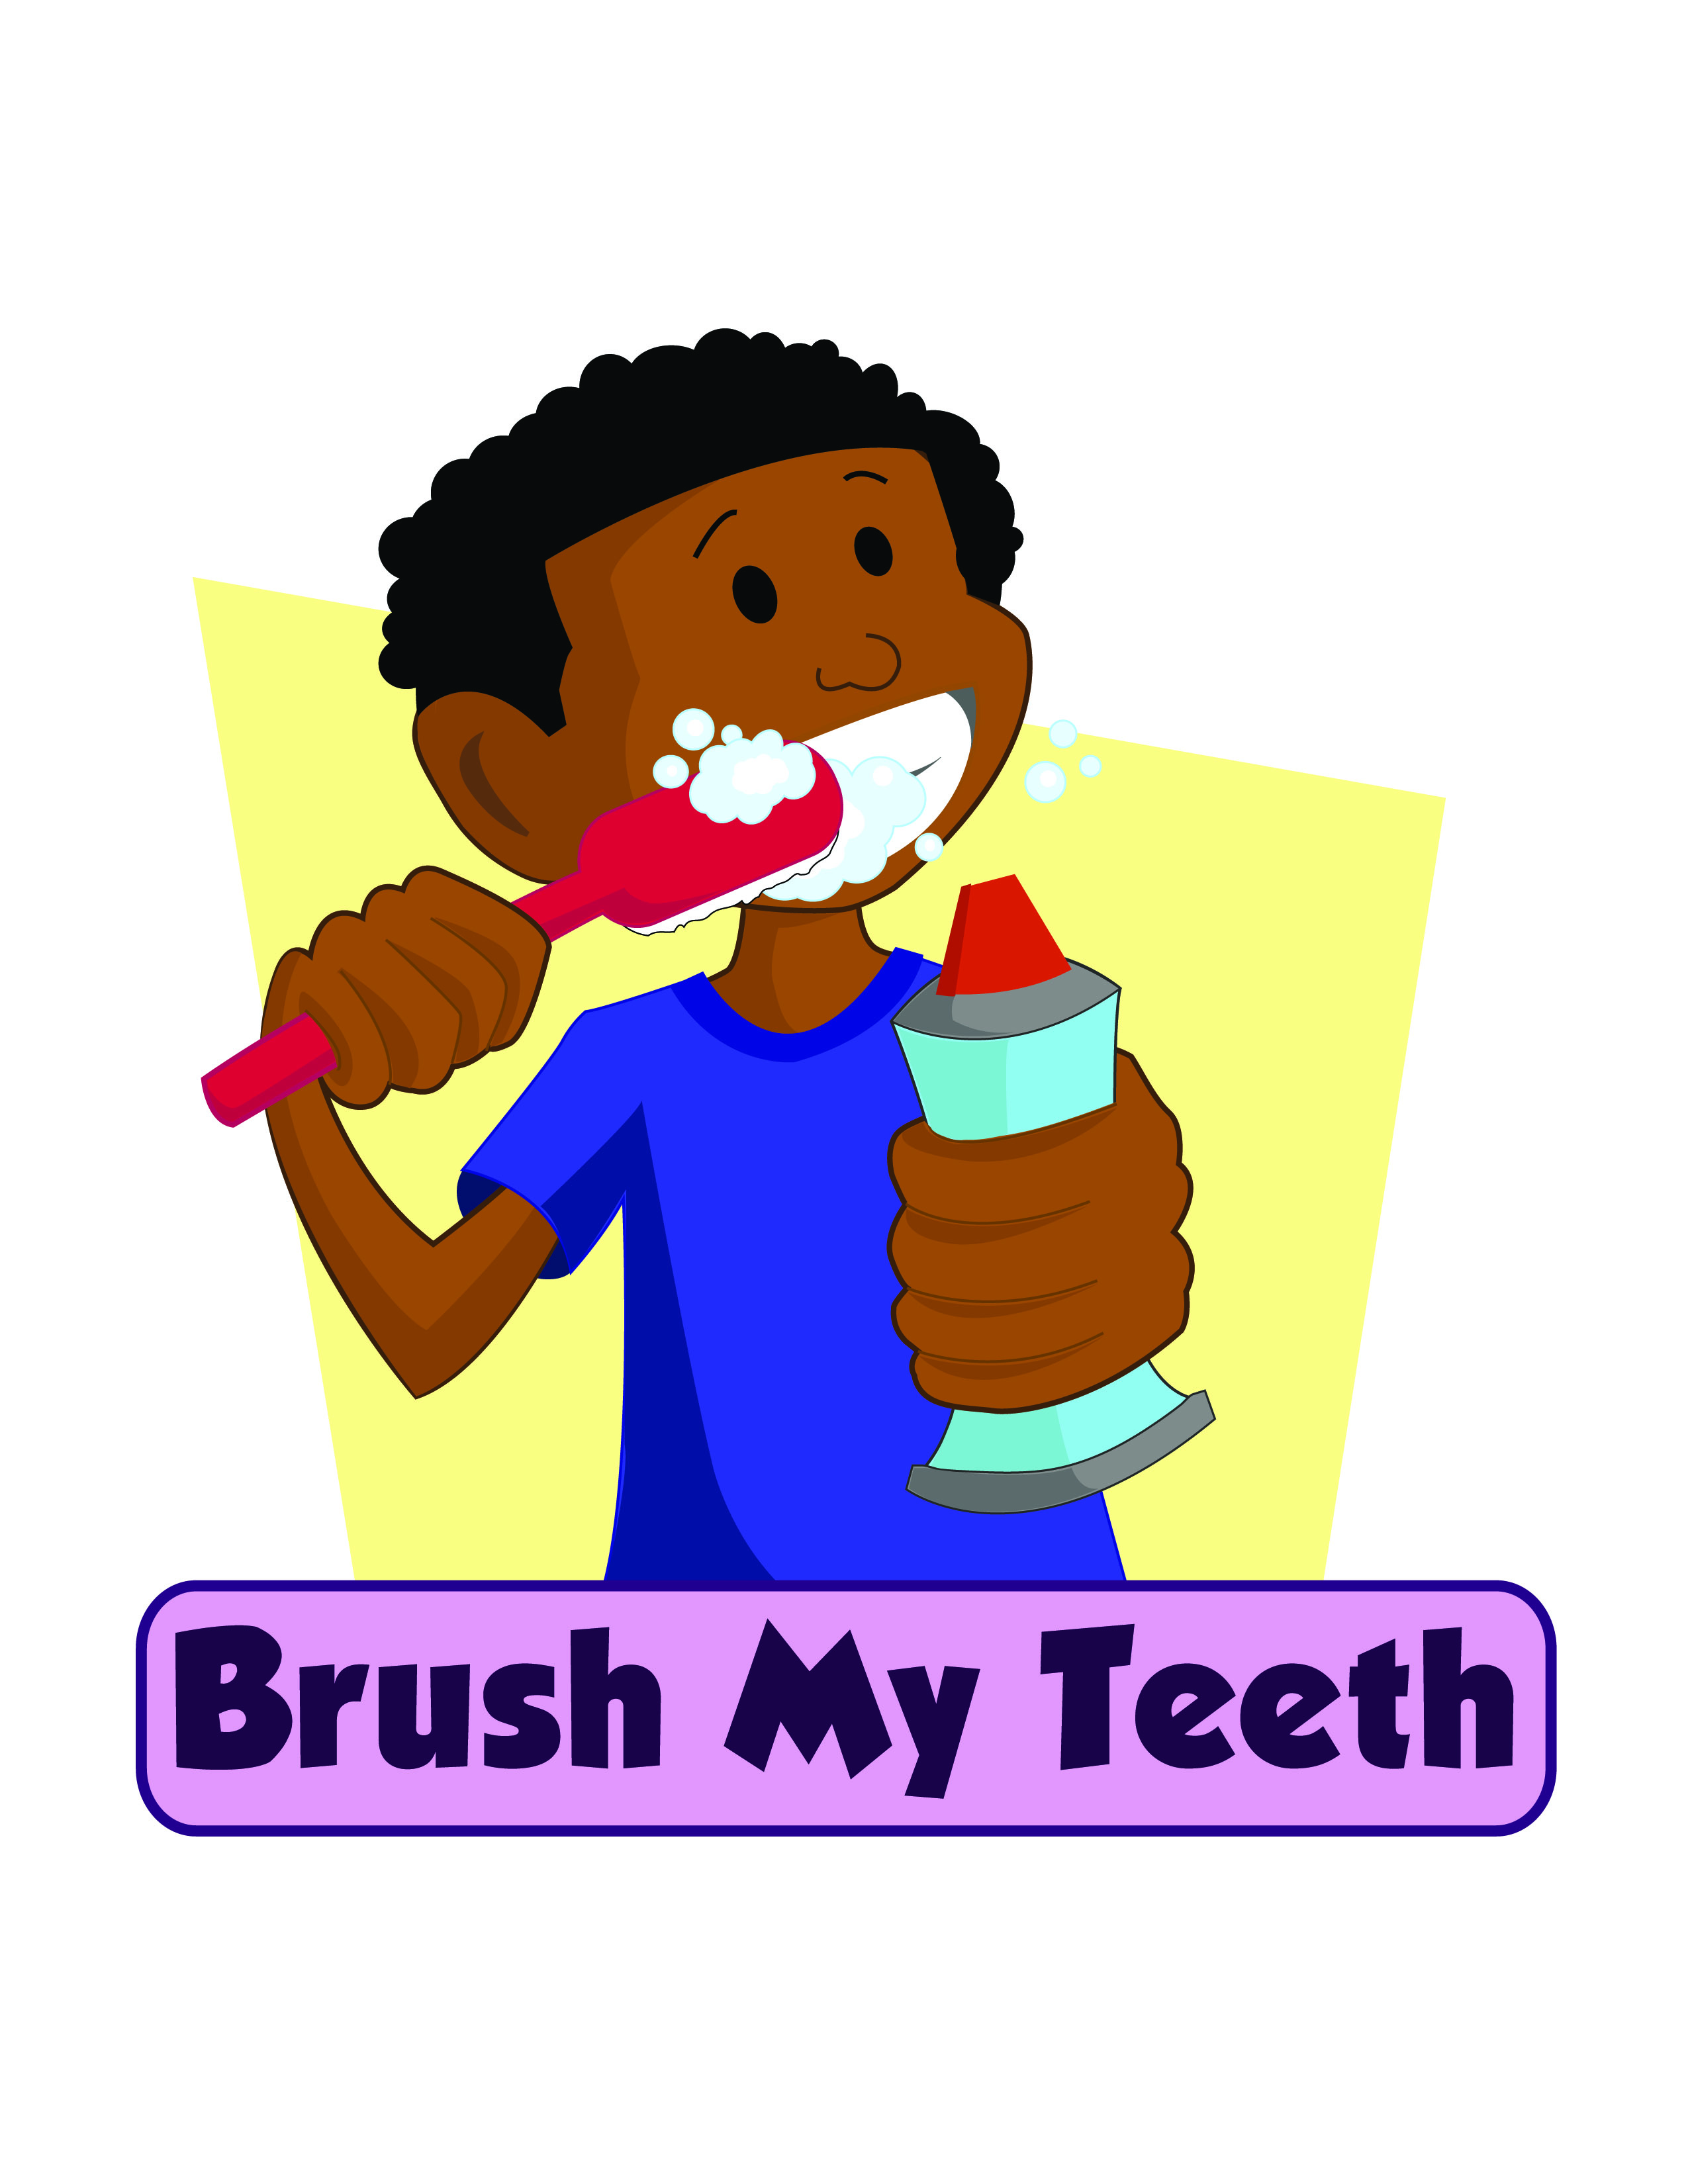 Free Images Of Brushing Teeth Download Free Clip Art Free Clip Art On Clipart Library